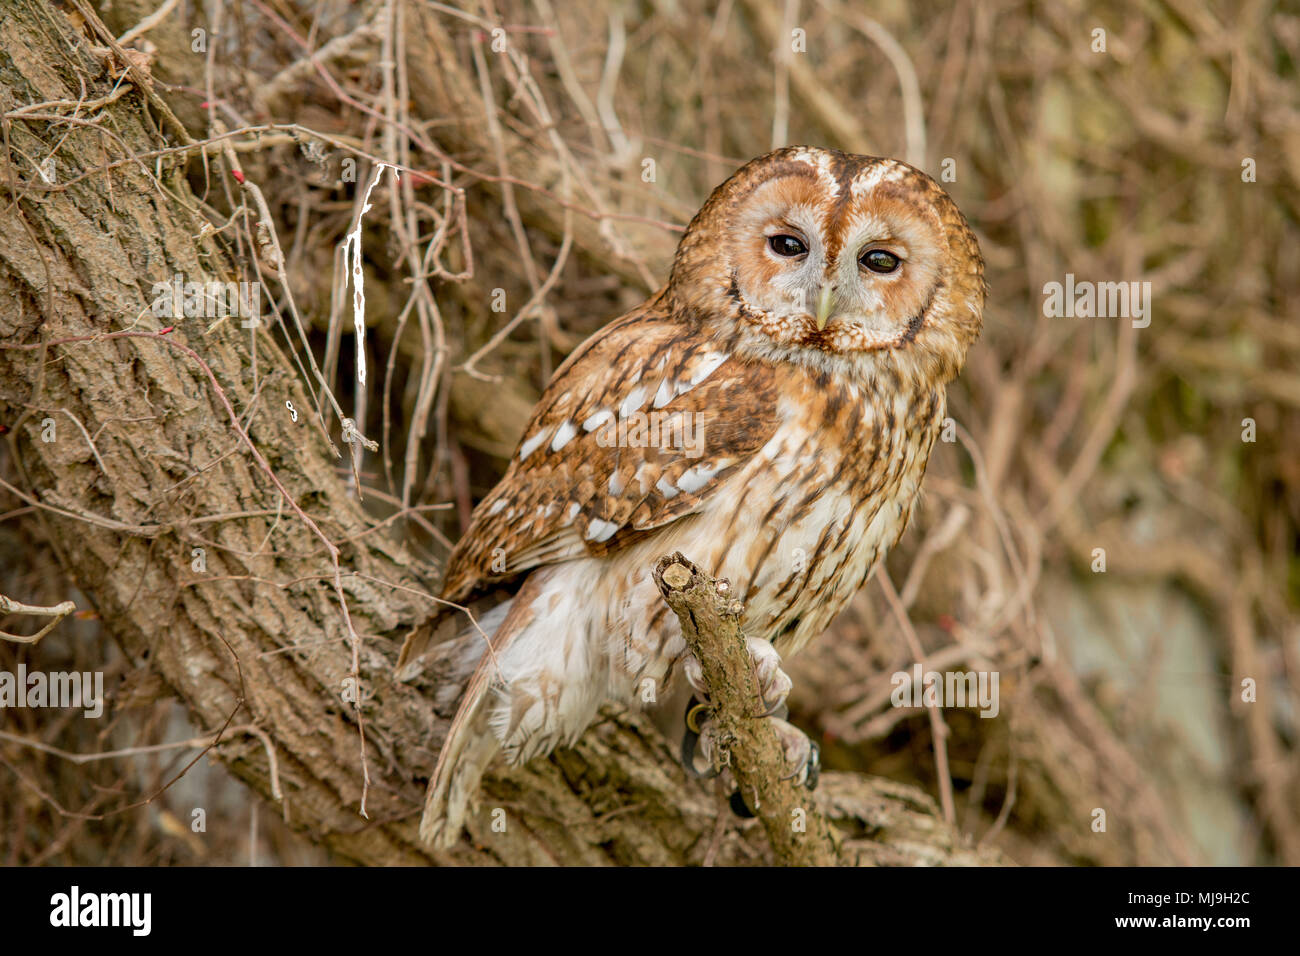 Beautiful tawny owl sat on an old vine - Stock Image